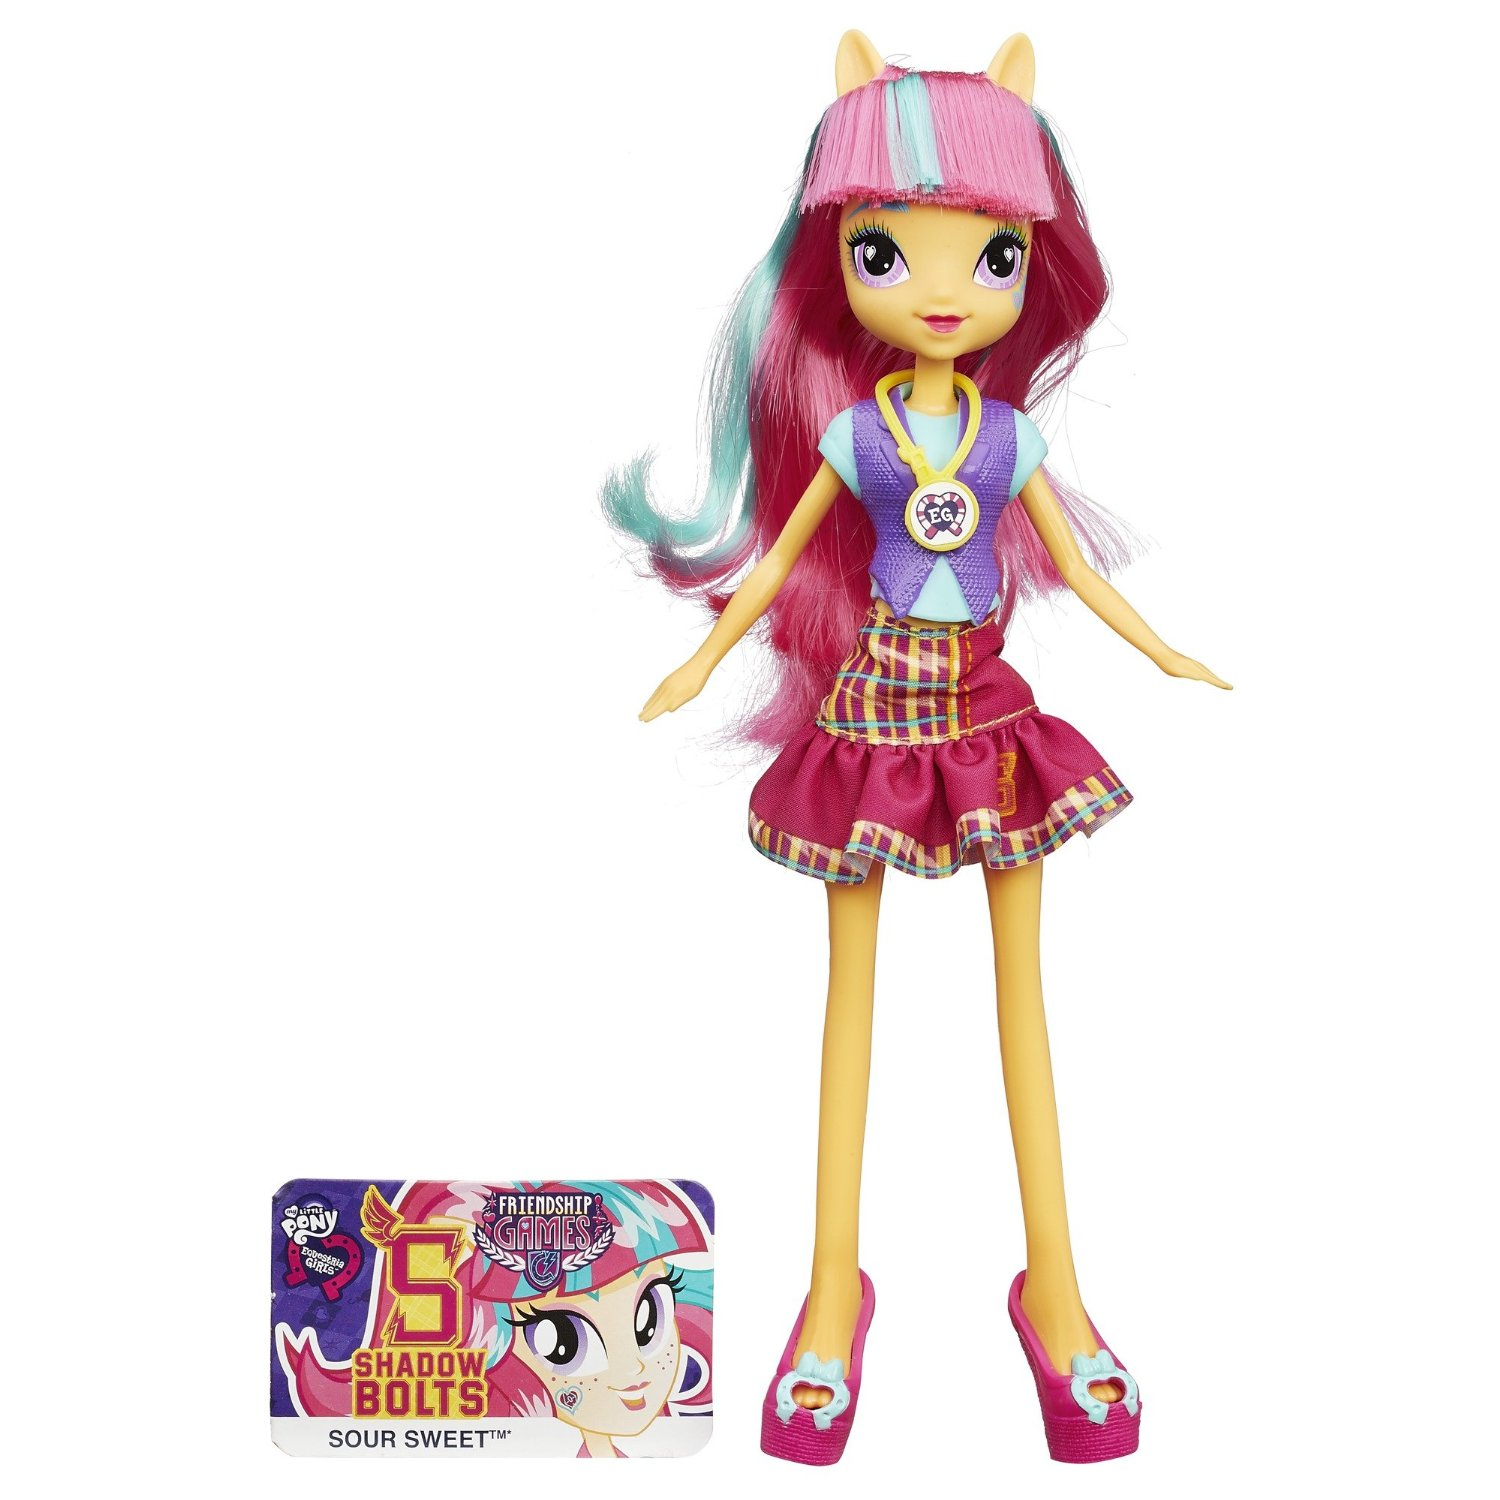 1500x1500 Mlp Equestria Girls Friendship Games Sour Sweet School Spirit Doll